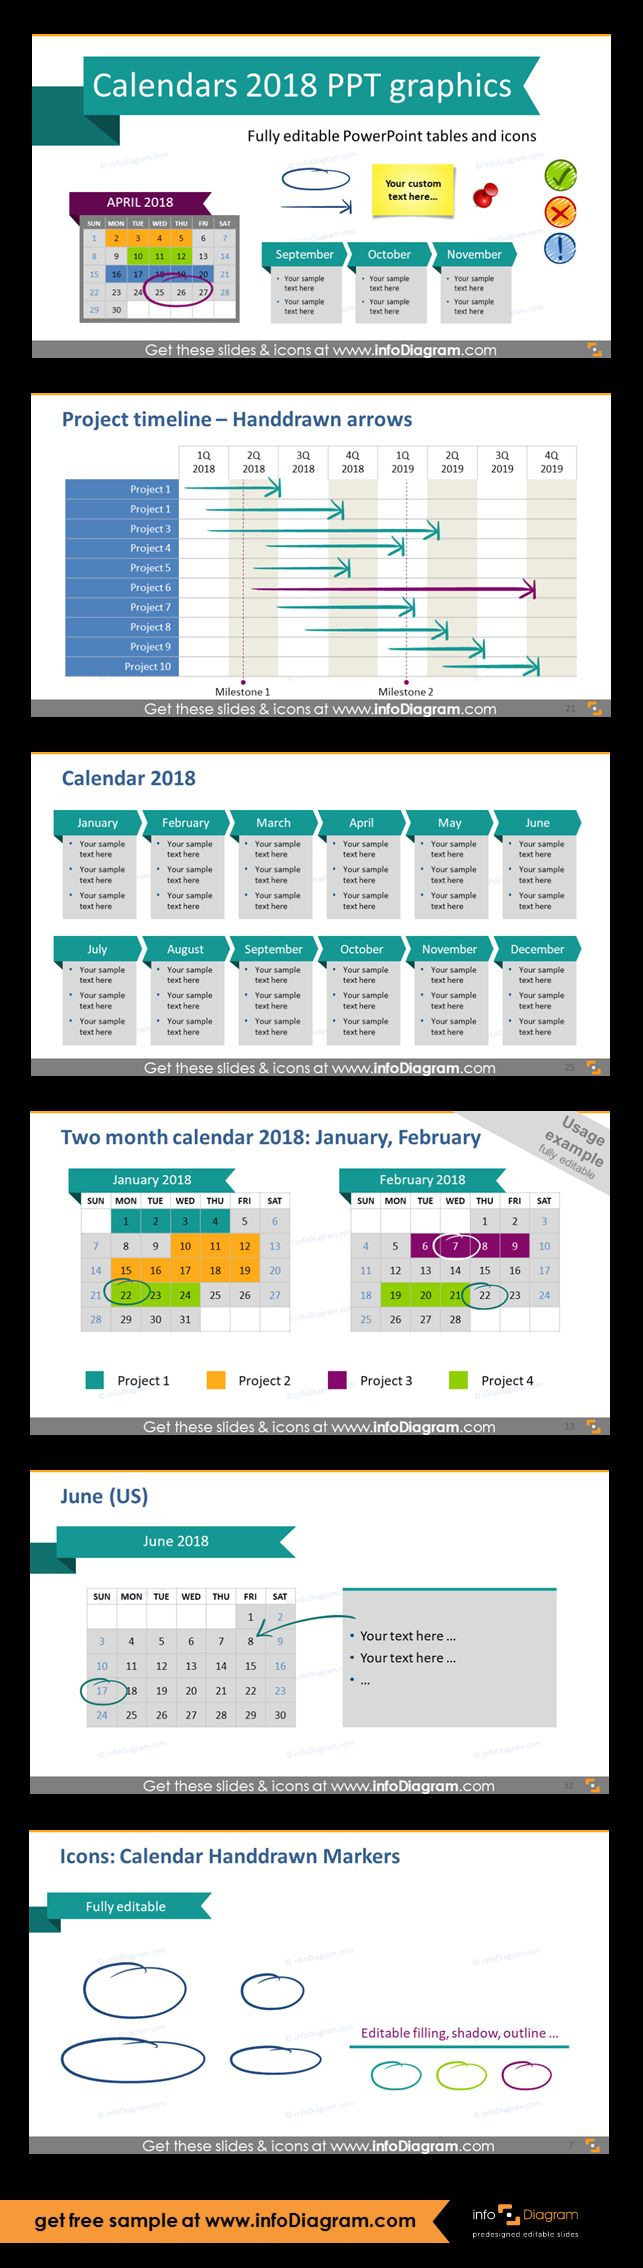 Predesigned 2018 Calendars and Timelines graphics editable in PowerPoint. Fully editable style, size and colors. Project plan calendar tables for marking start, end, duration of the tasks and projects Gantt charts, yearly calendar with place for main goals, two mnth calendar for 2018 year, monthly calrndar with place for description, handwritten markers collection.